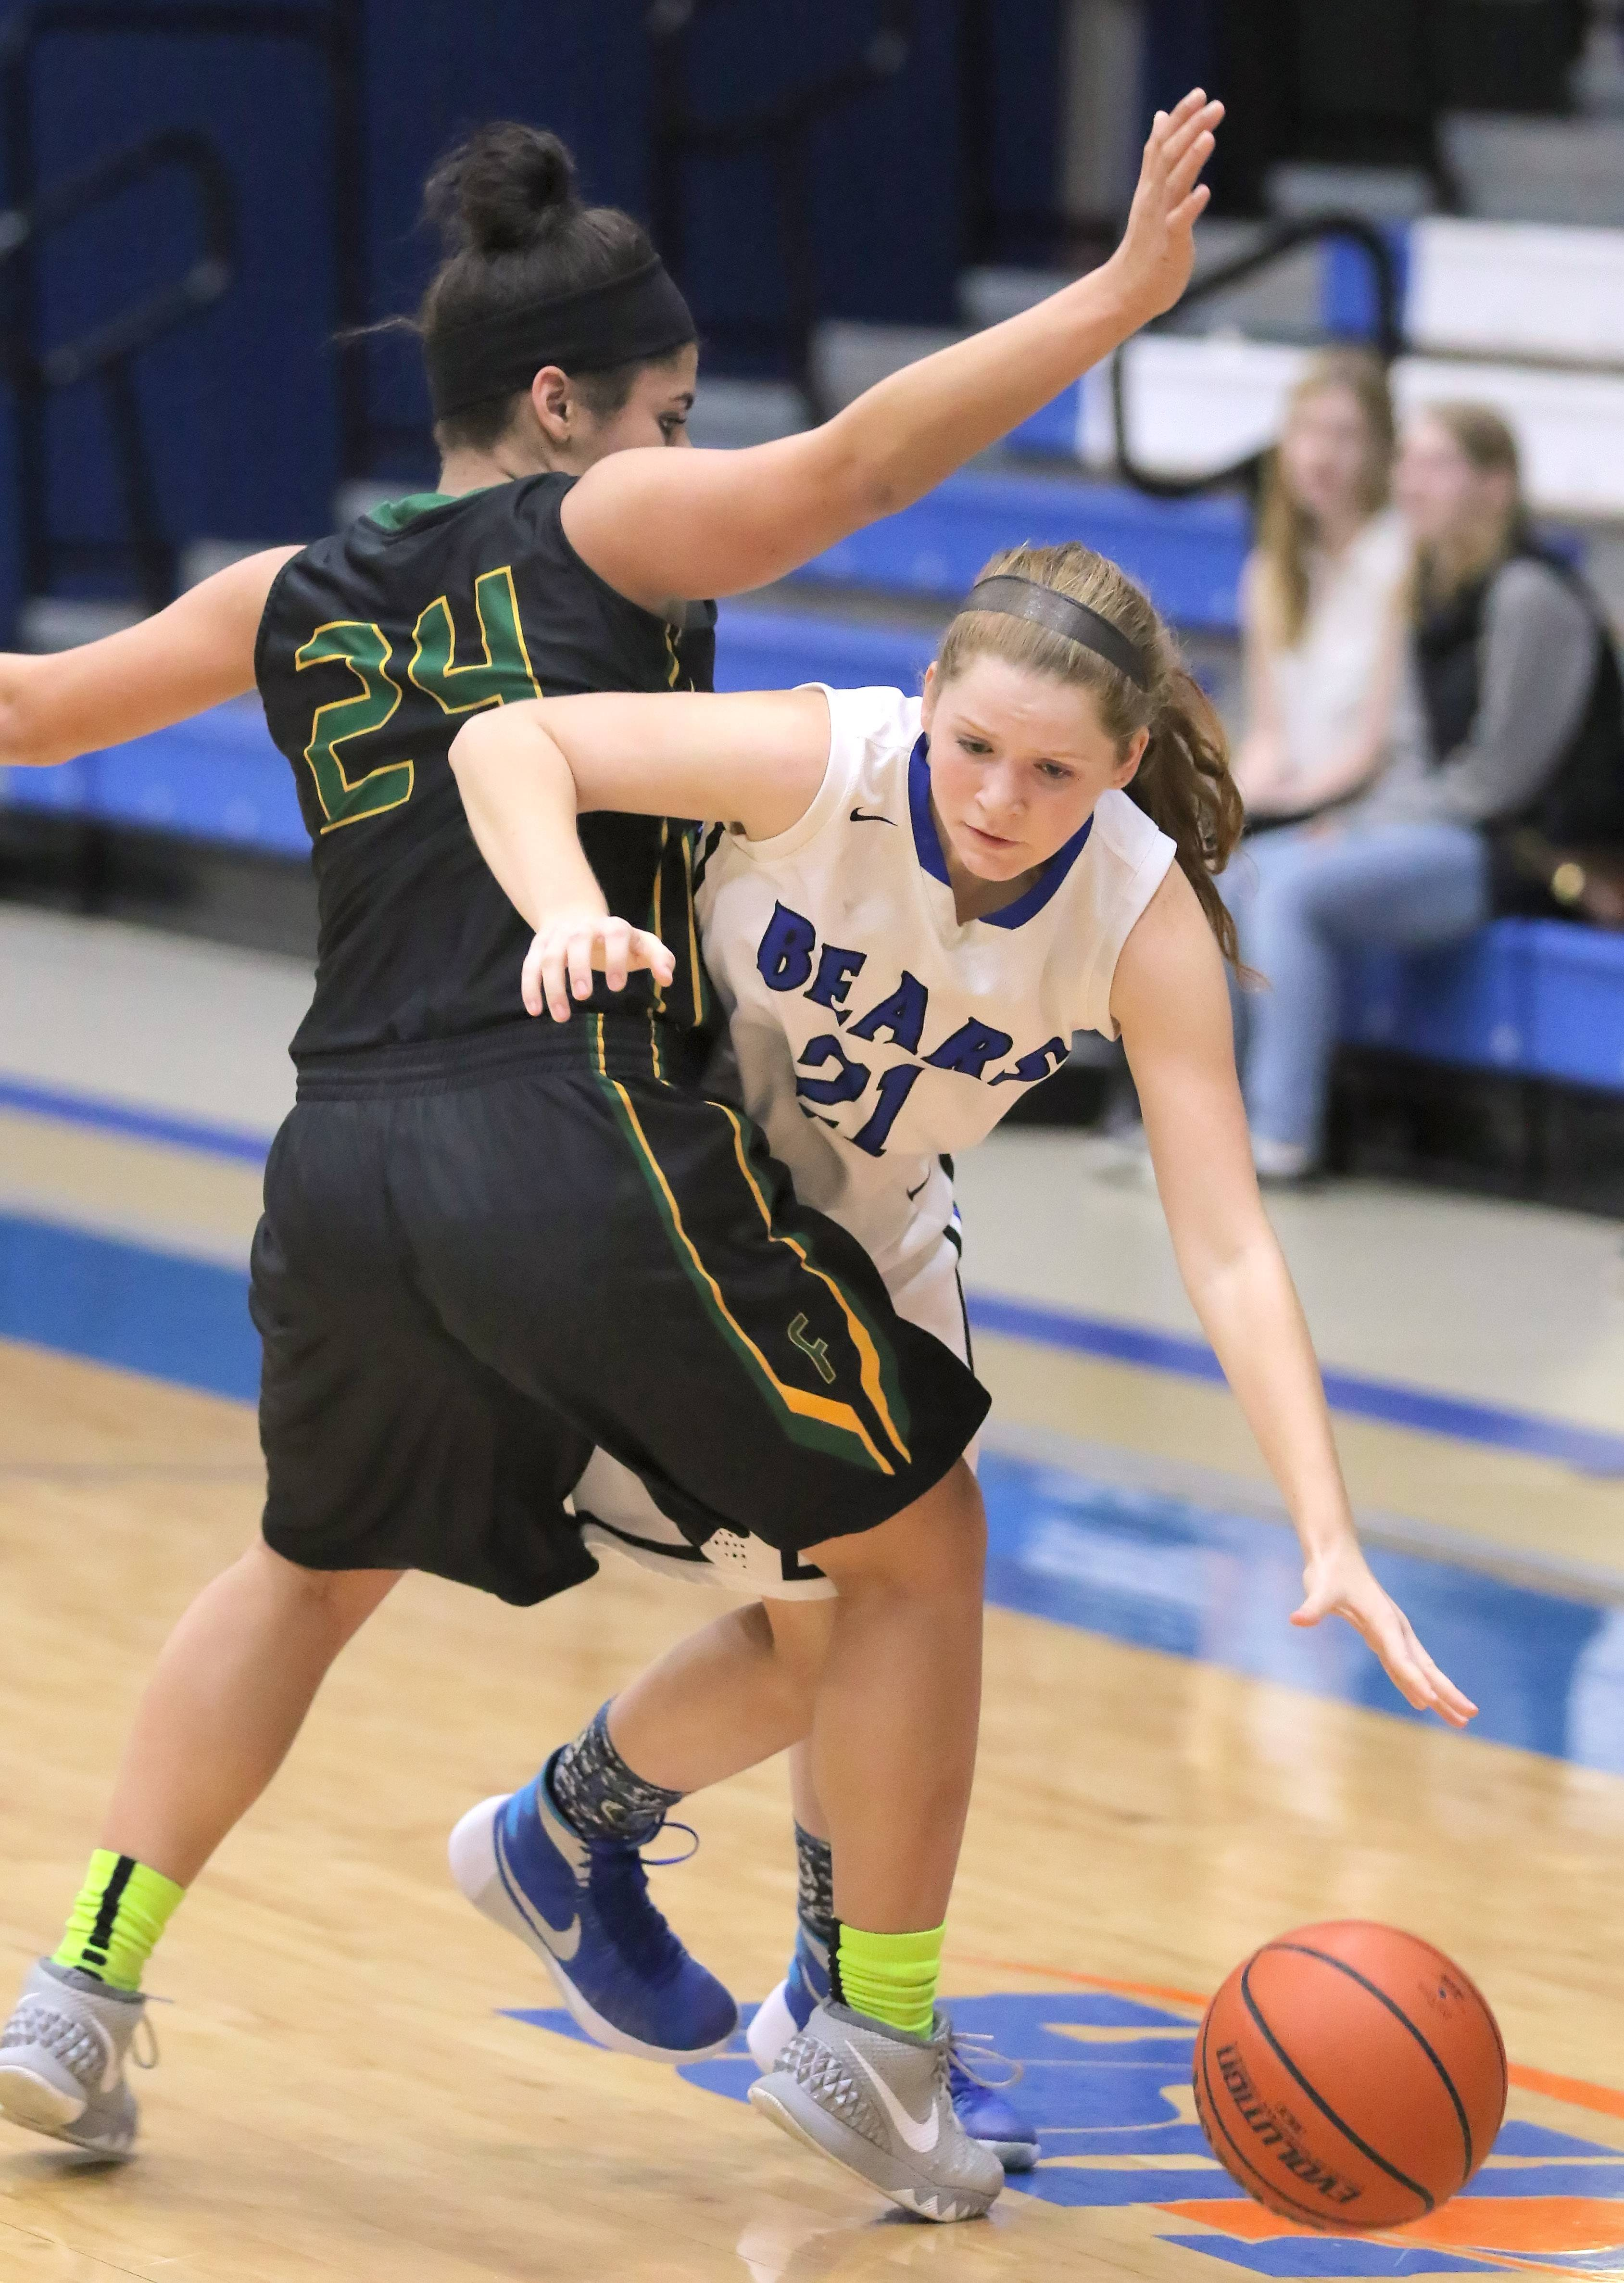 Lake Zurich's Anna Biergans, right, tries to get around Fremd's Midori Williams on Wednesday night at Lake Zurich.